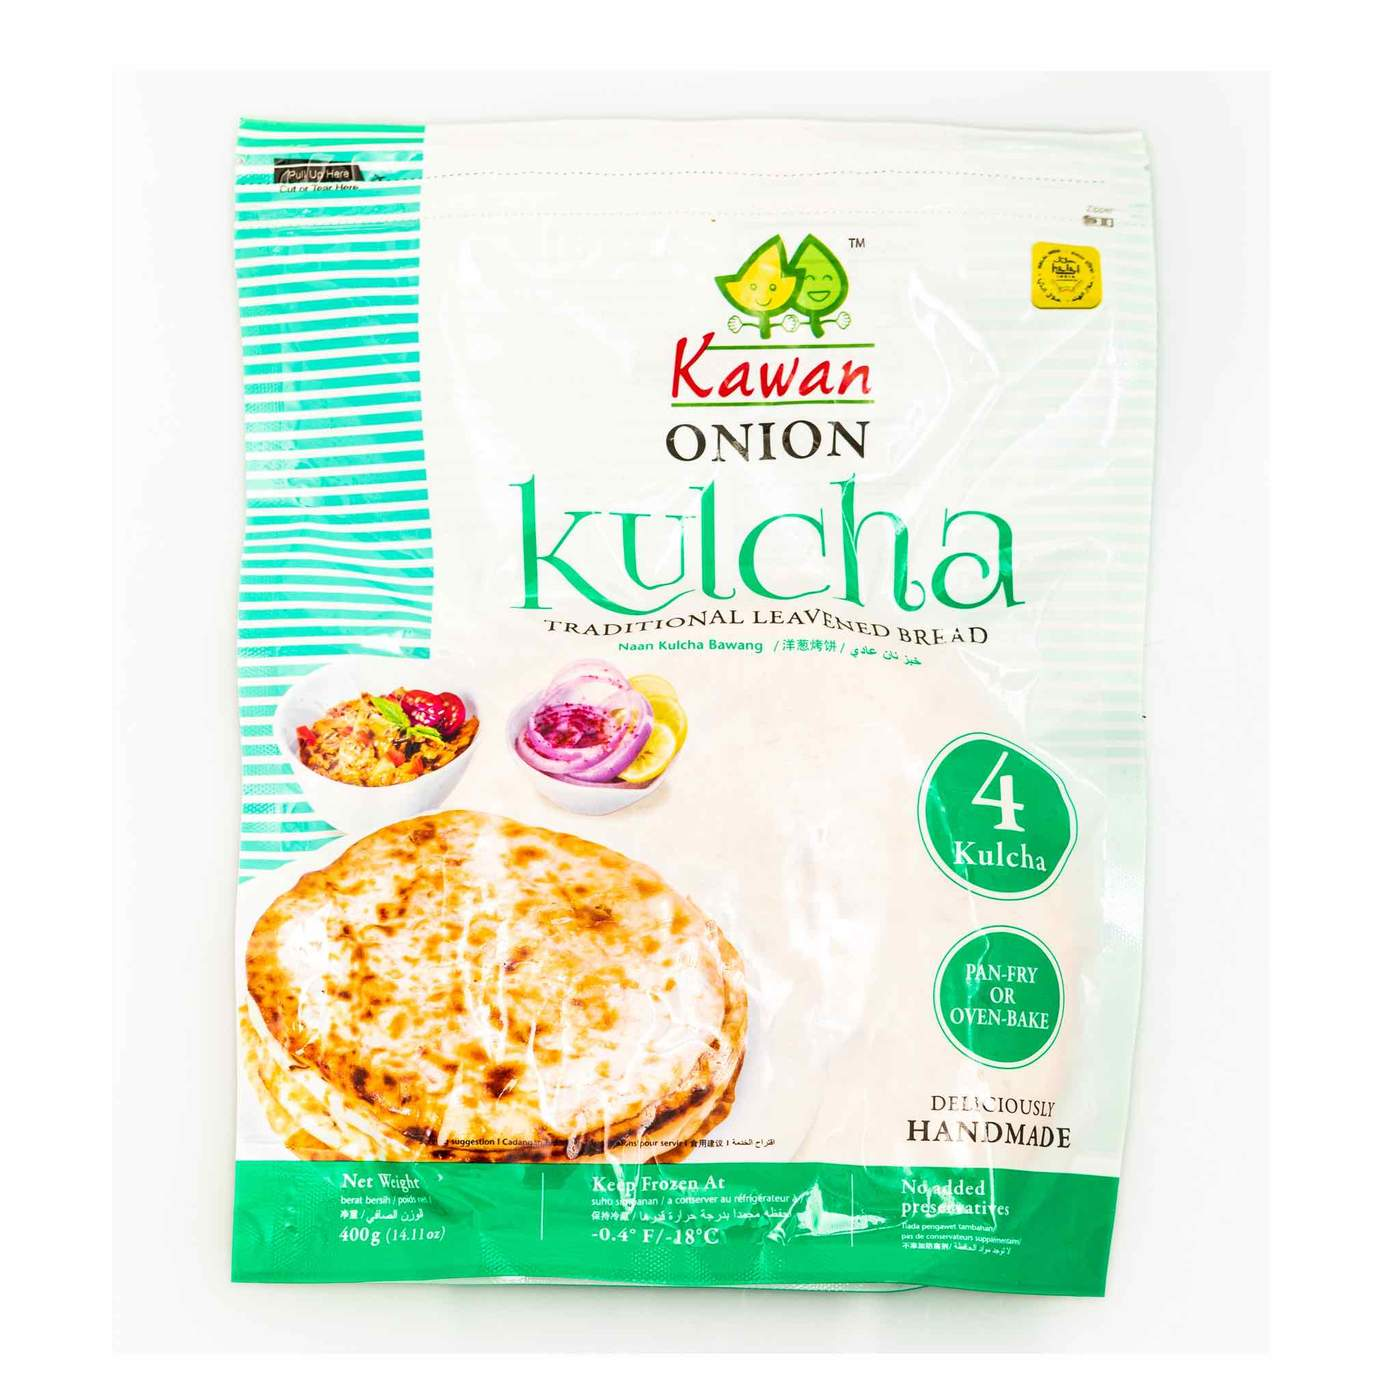 KAWAN ONION KULCHA 4 pcs